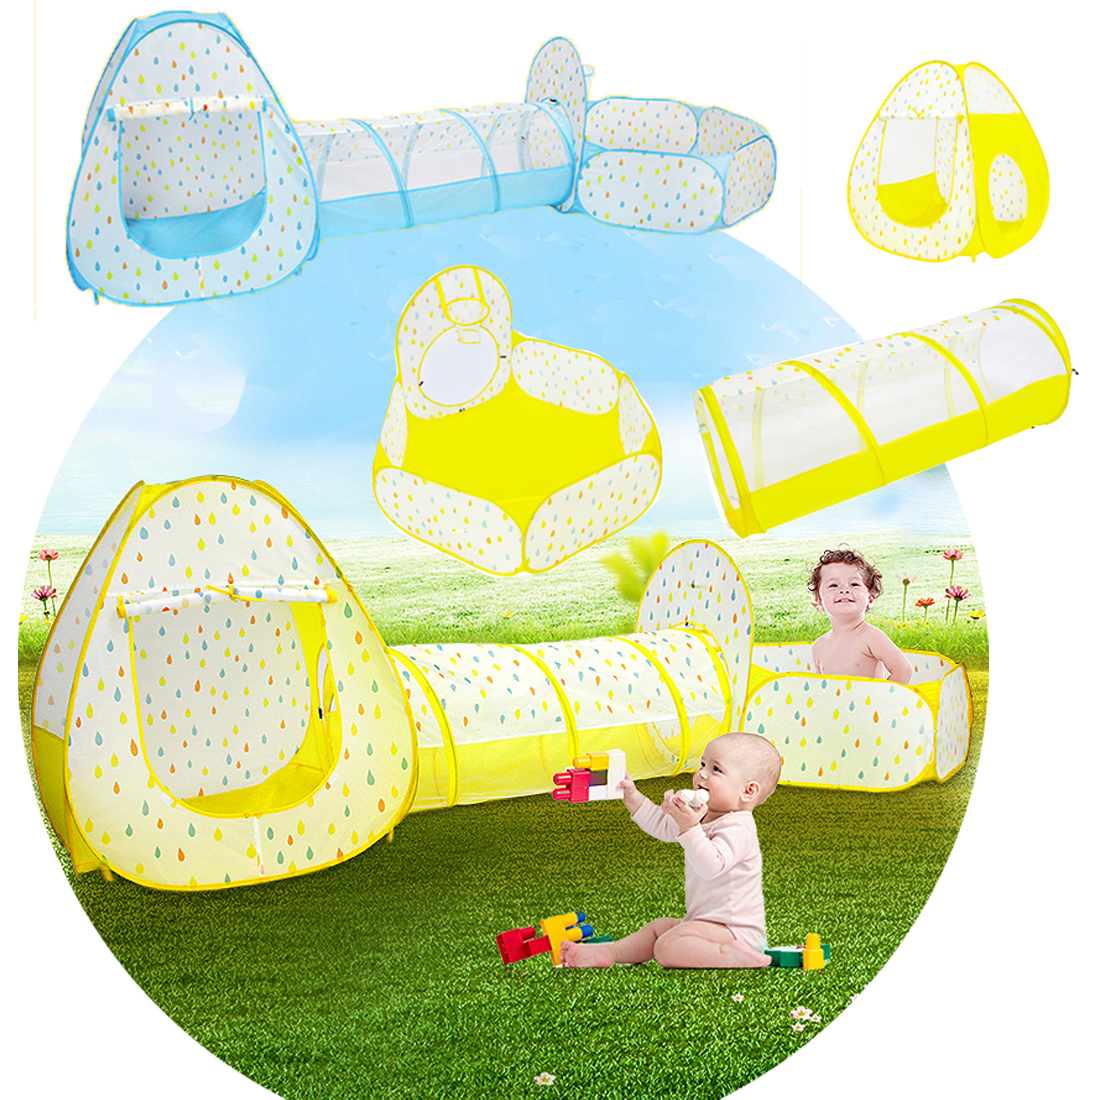 watch 2b6e1 97d50 US $39.23 41% OFF|3 in 1 Kids Raindrop Toy Tent With Ball Pool Crawling  Tunnel Teepee Children Folding Play Tent Baby Breathable Game House-in Toy  ...